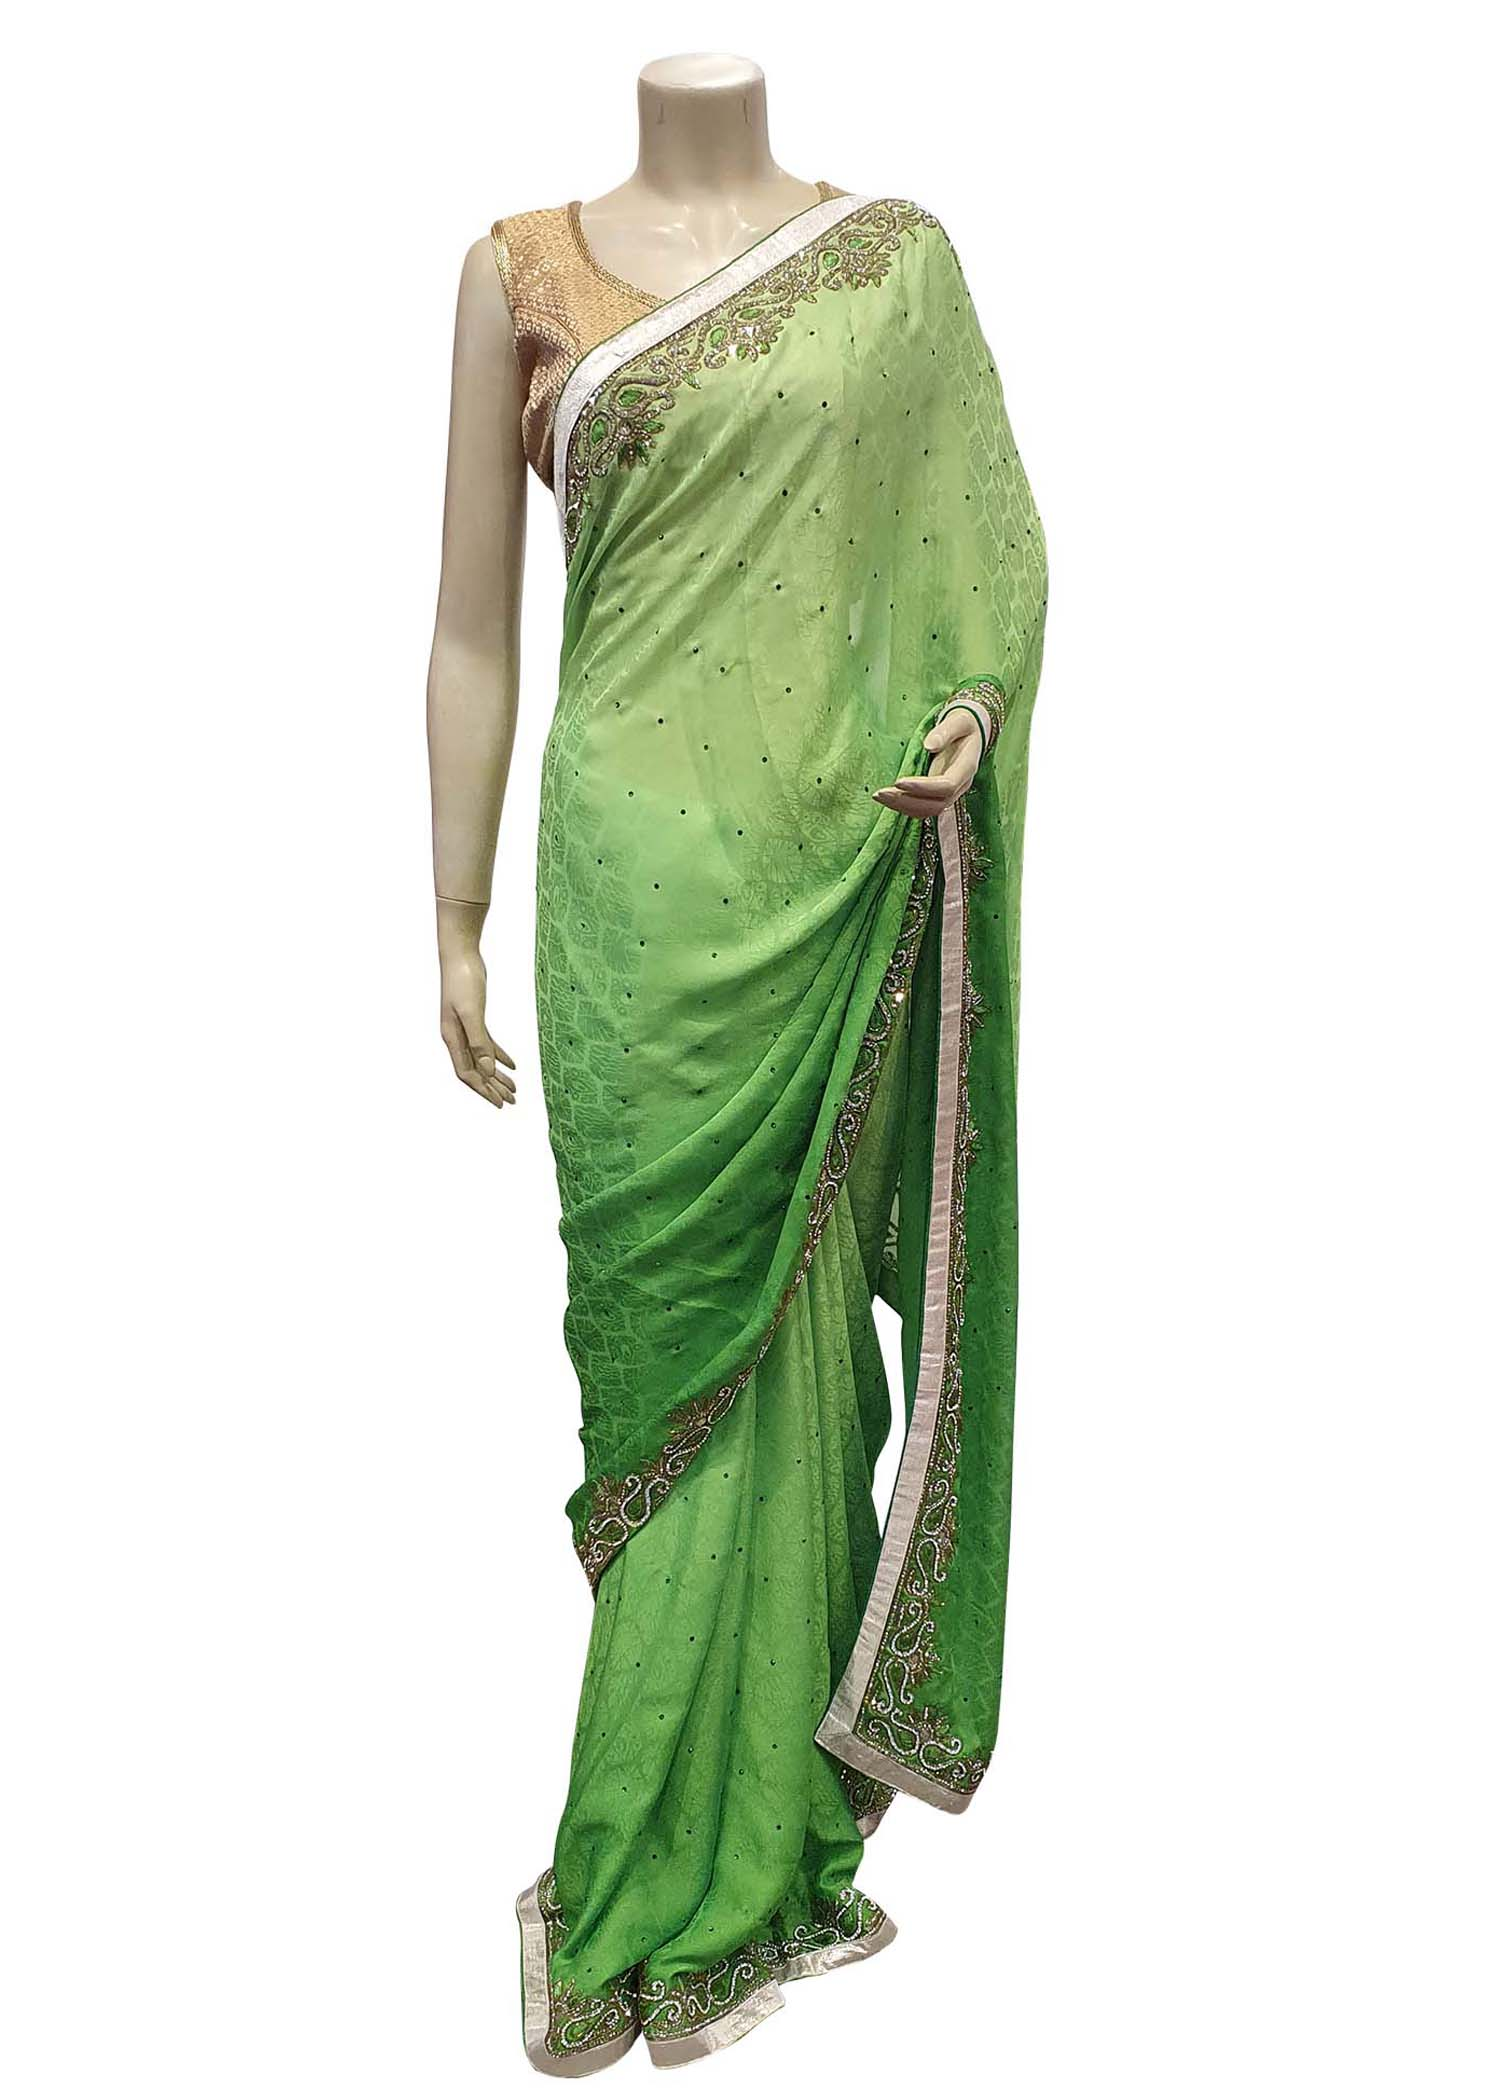 Green Banarsai Silk Saree With diamante Embroidered Border